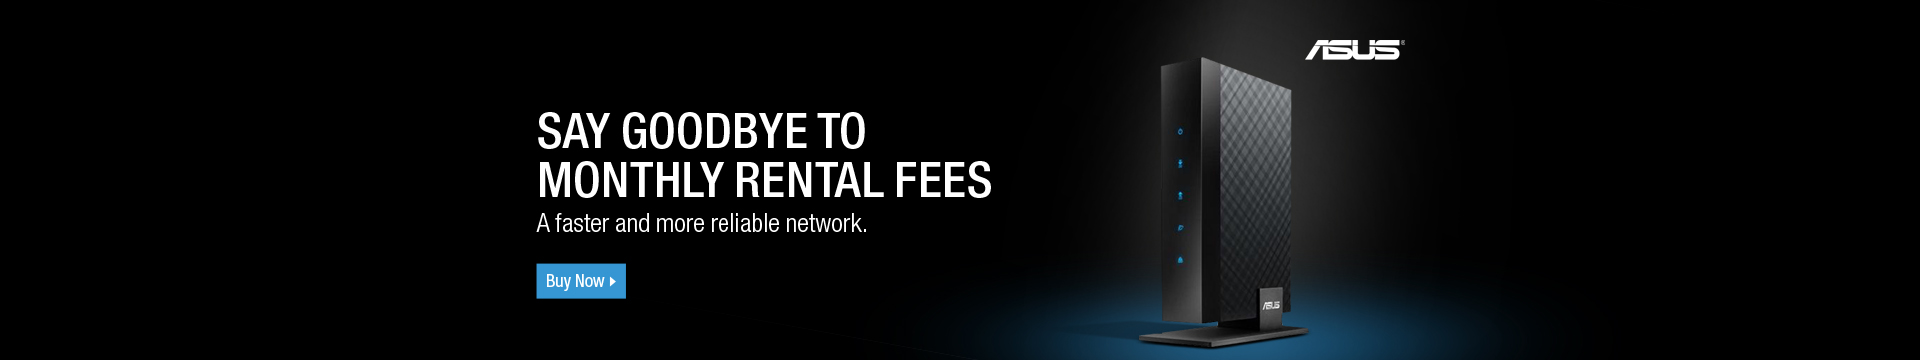 Say goodbye to monthly rental fees